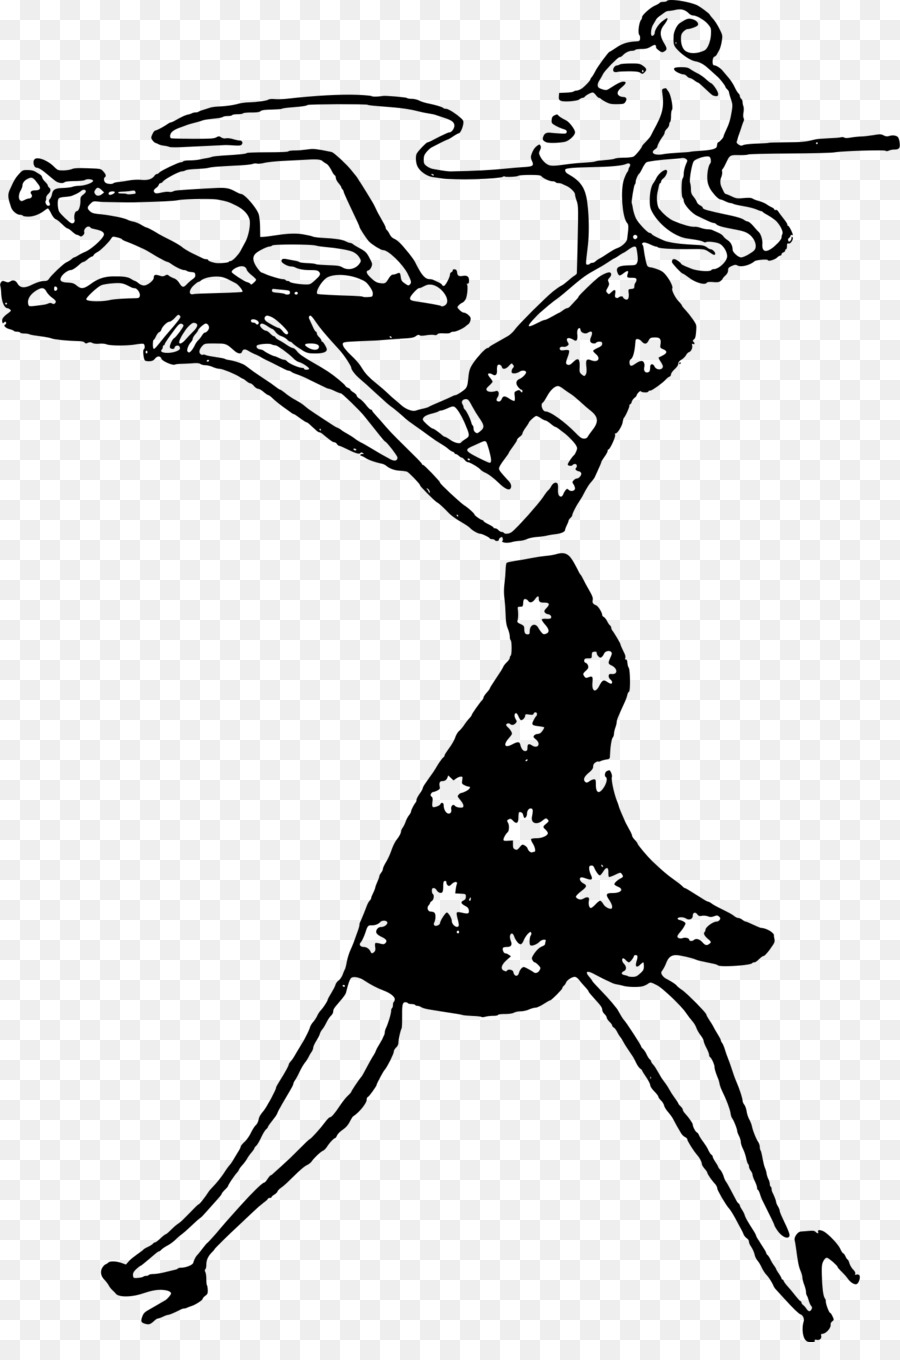 hight resolution of housewife turkey meat woman line art silhouette png